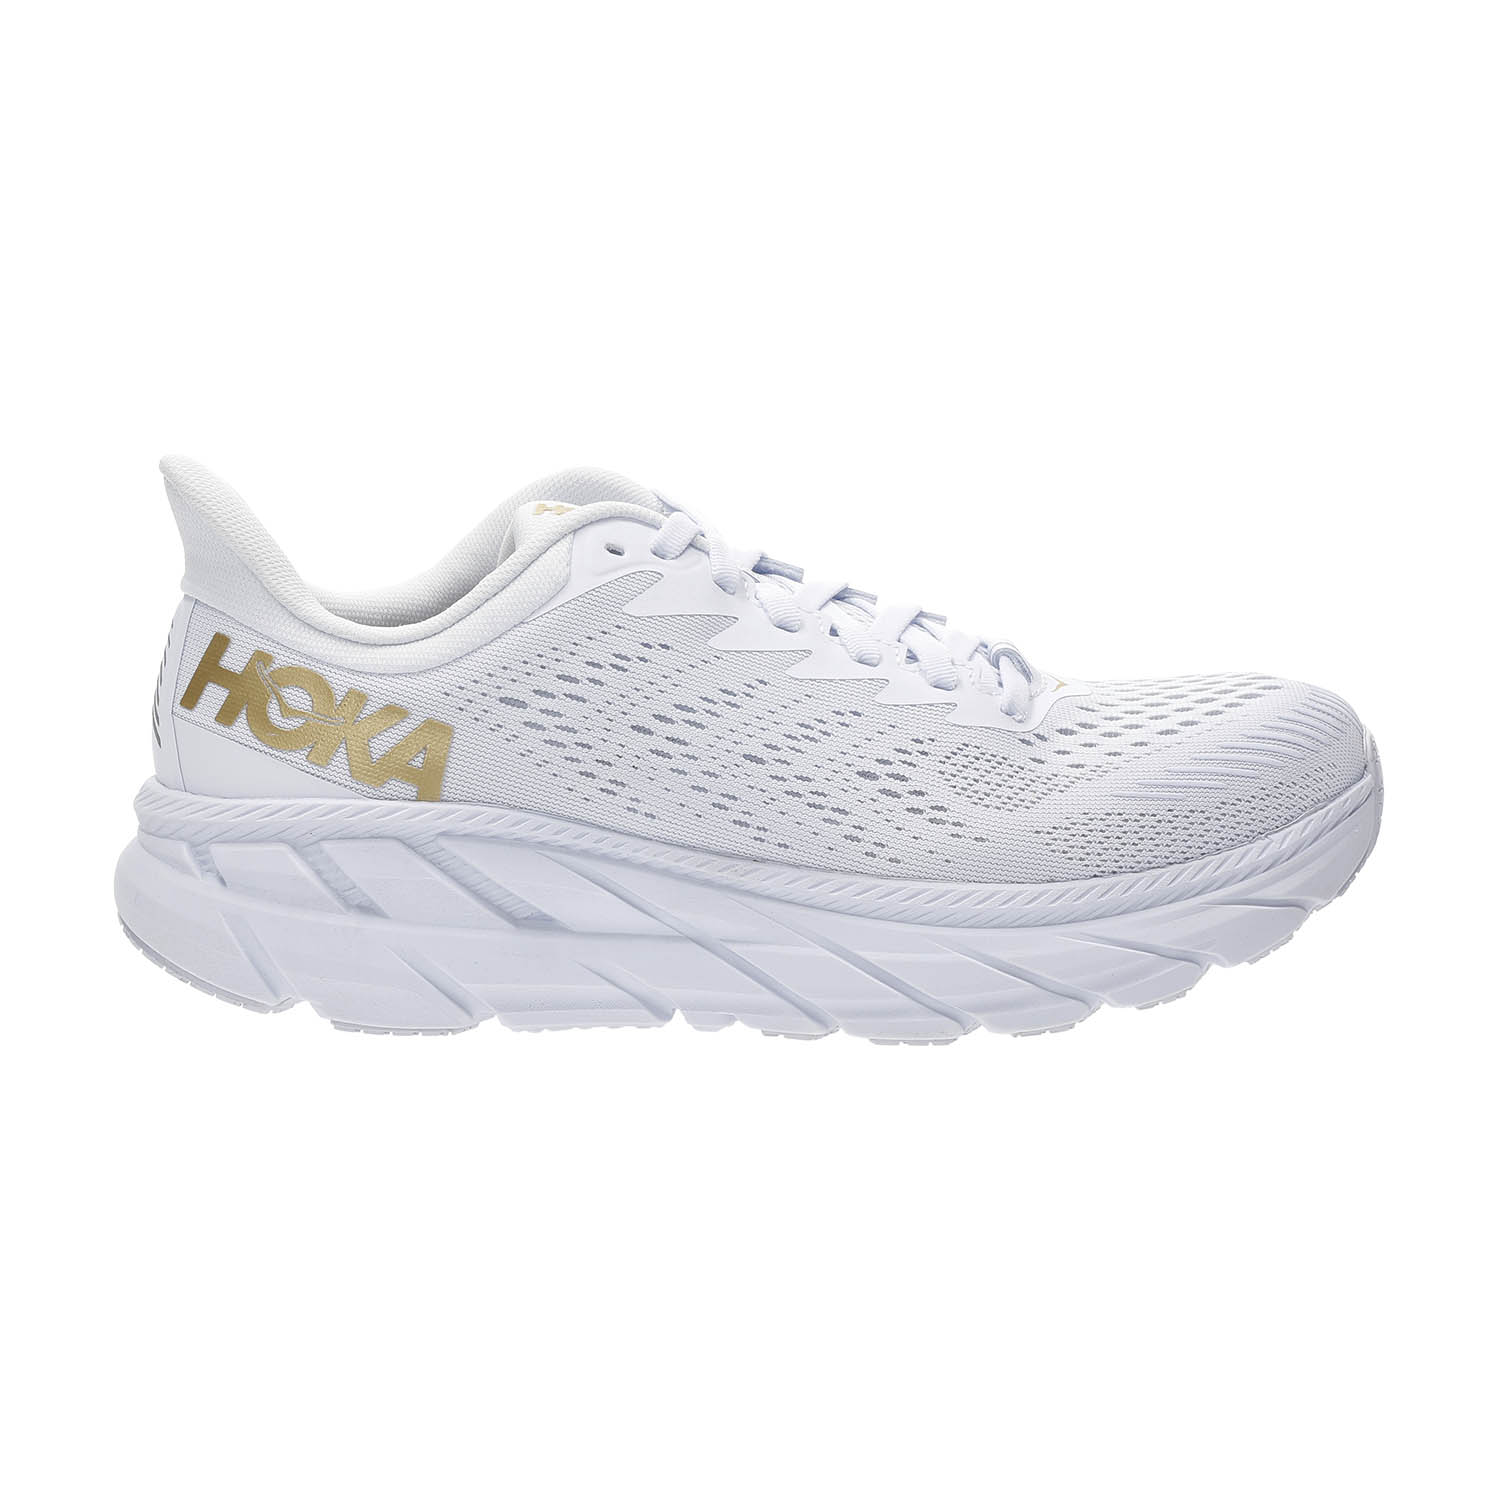 Hoka One One Clifton 7 - White/Golden Egg